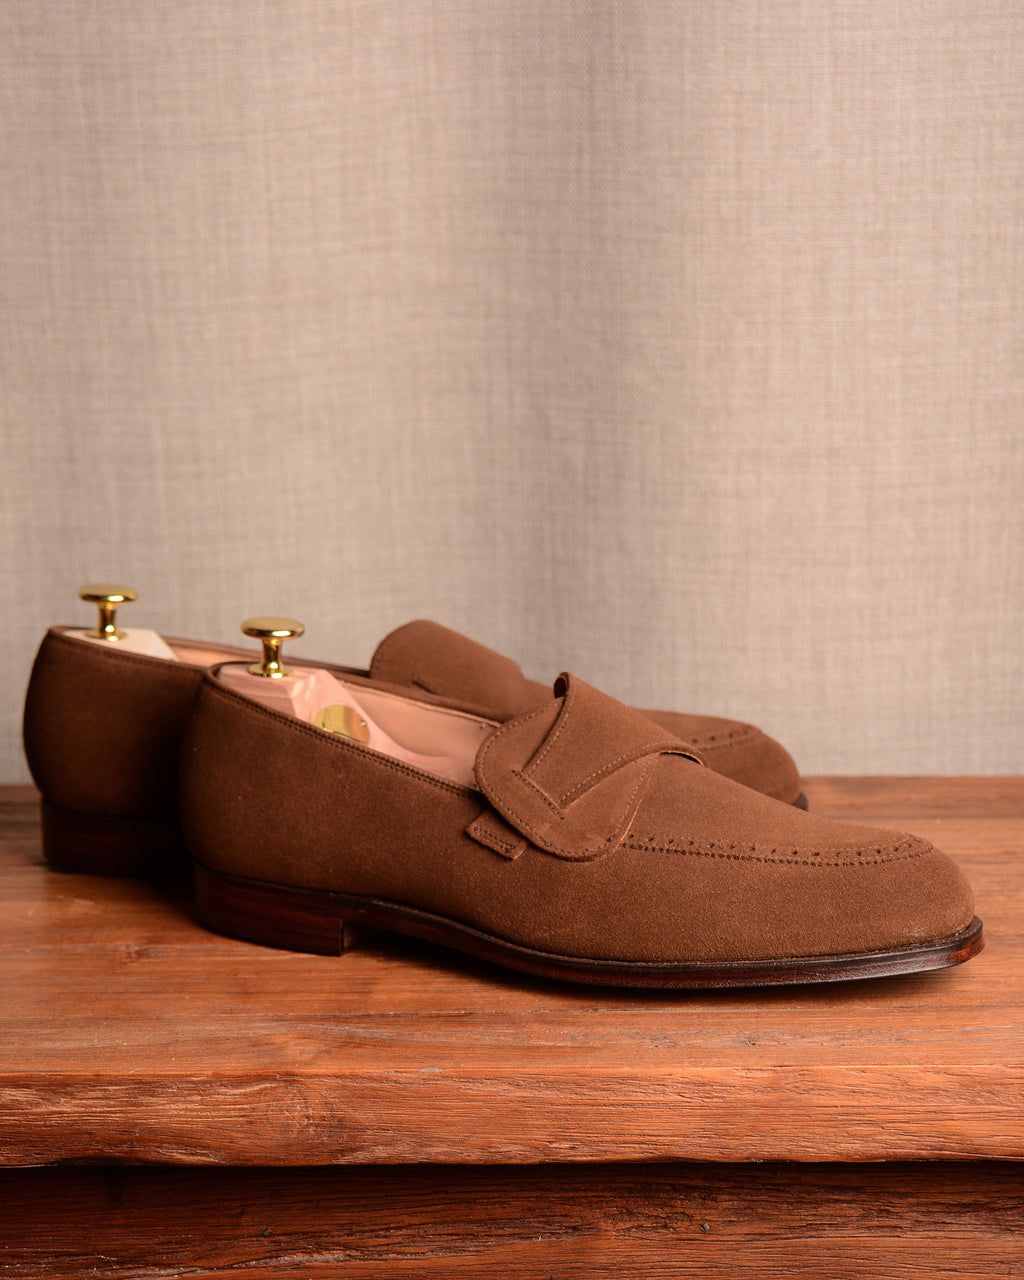 Crockett & Jones Admiral - Snuff Suede